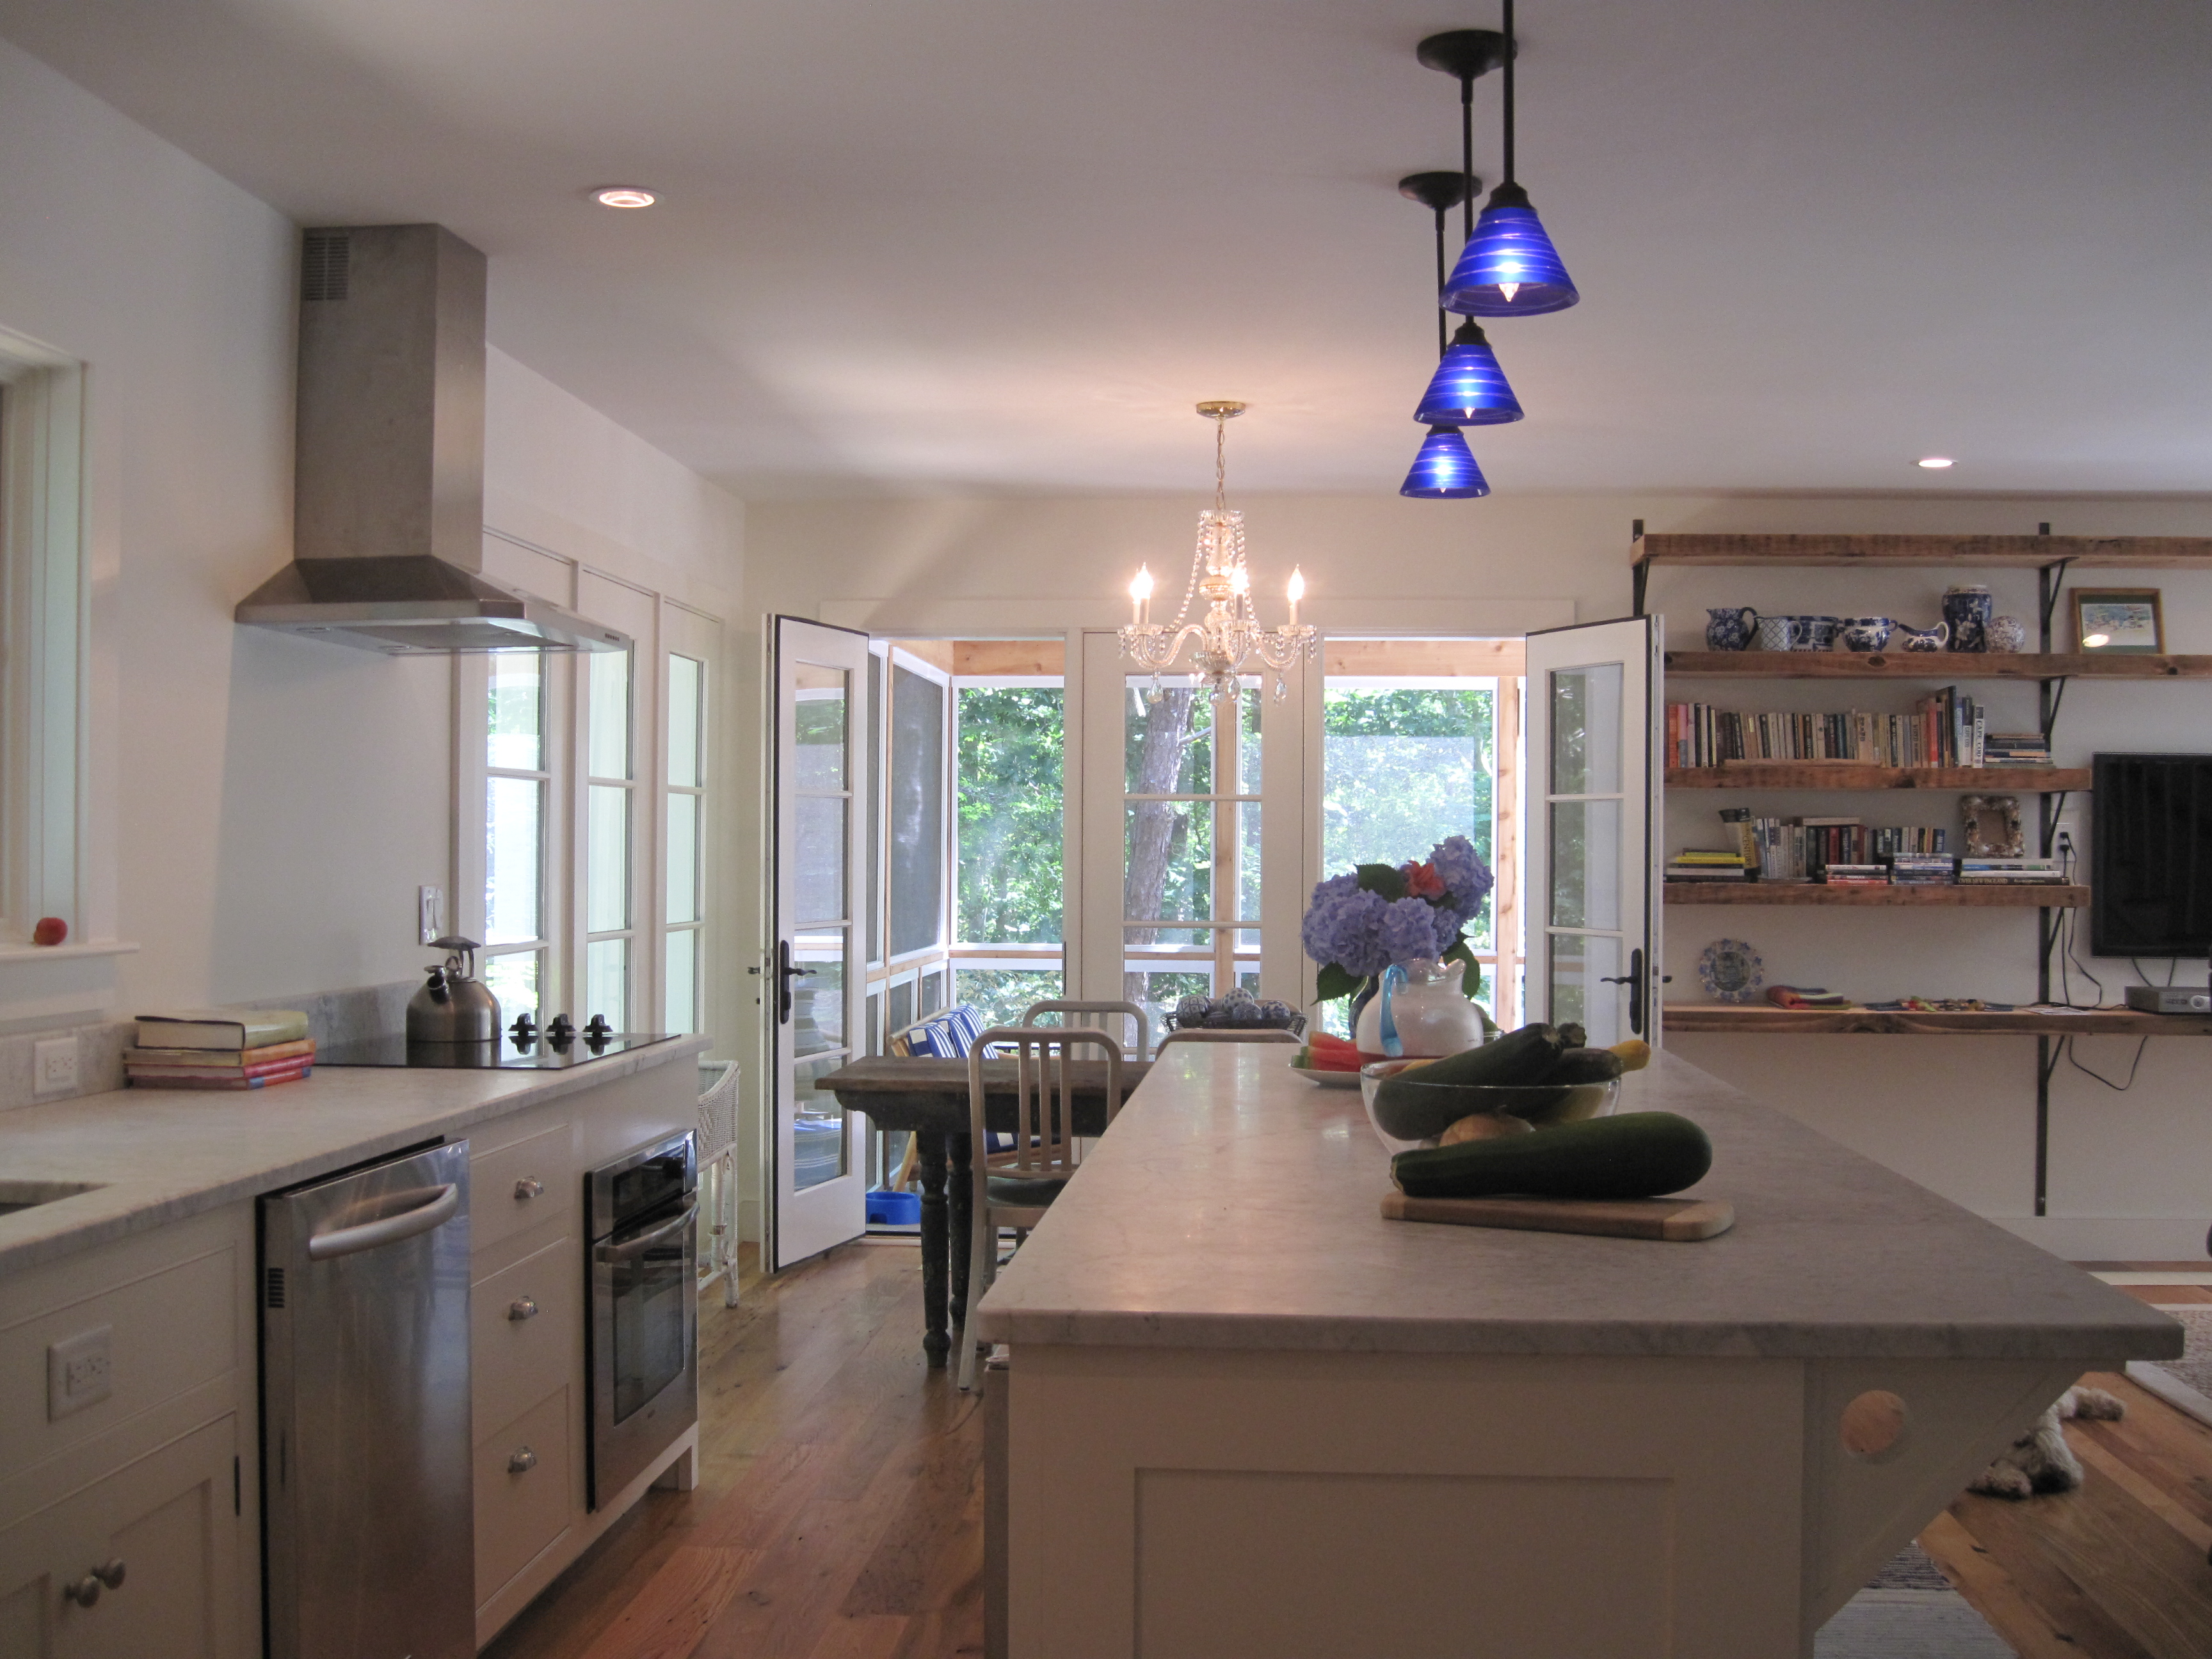 north eastham hindu singles 60 arrowhead road is a real estate single family property that is for sale by berkshire hathaway homeservices ne prime properties on wwwownnewenglandcom the mls# is 21803558 and it is available for $424,000 includes 4 beds , 2 baths and 1394 square feet.